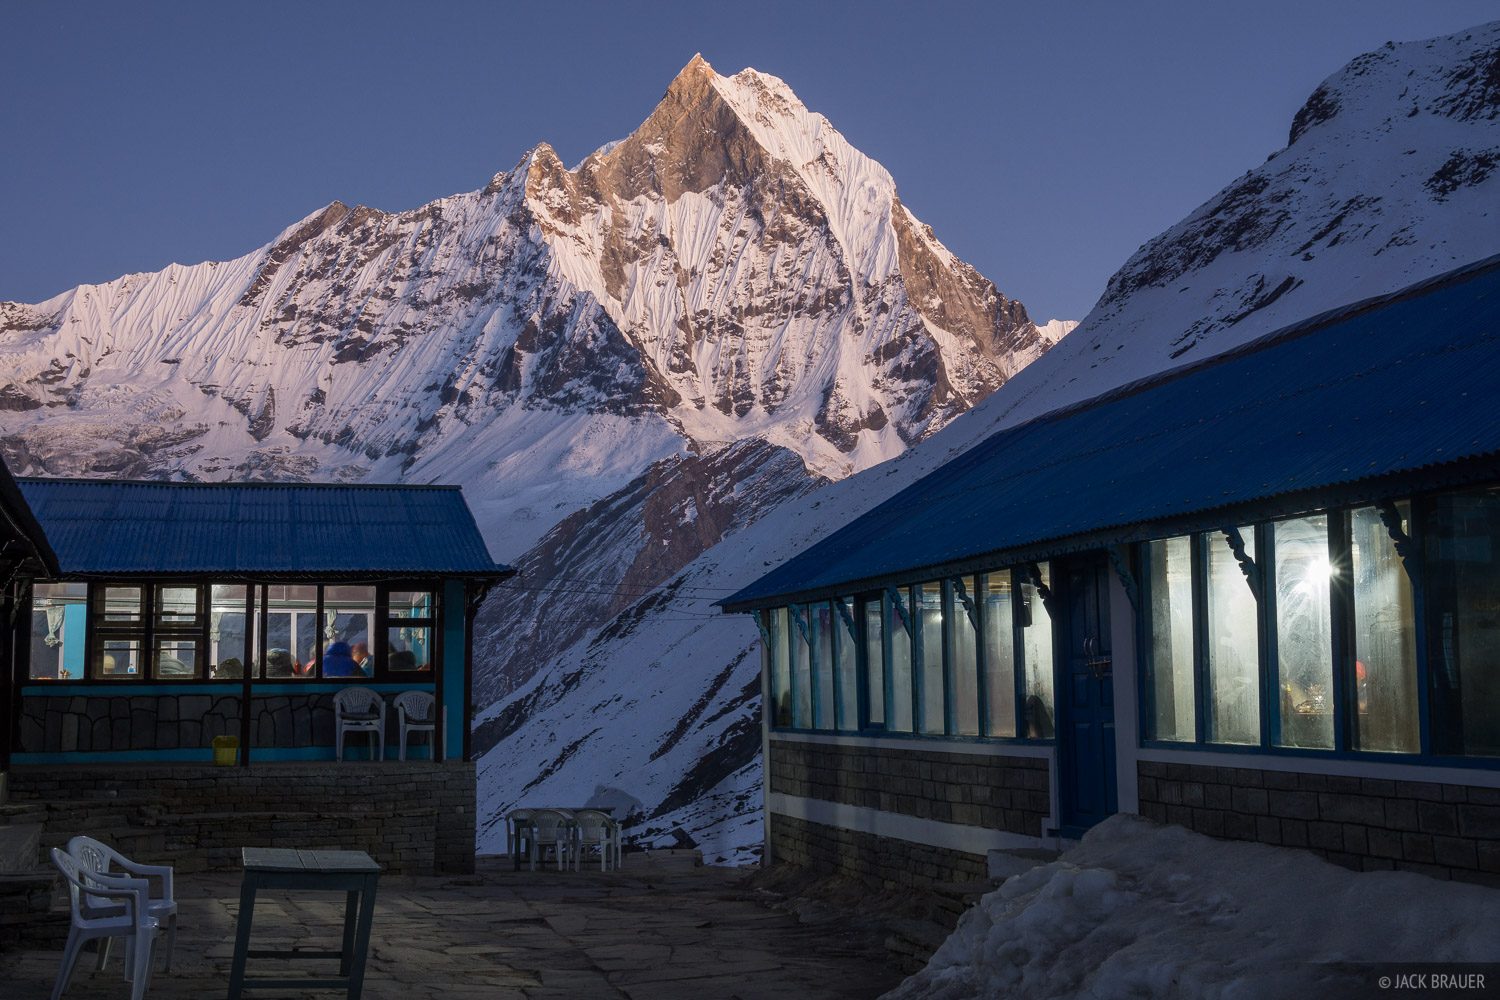 Machhapuchhre towering over Annapurna Base Camp, at twilight.